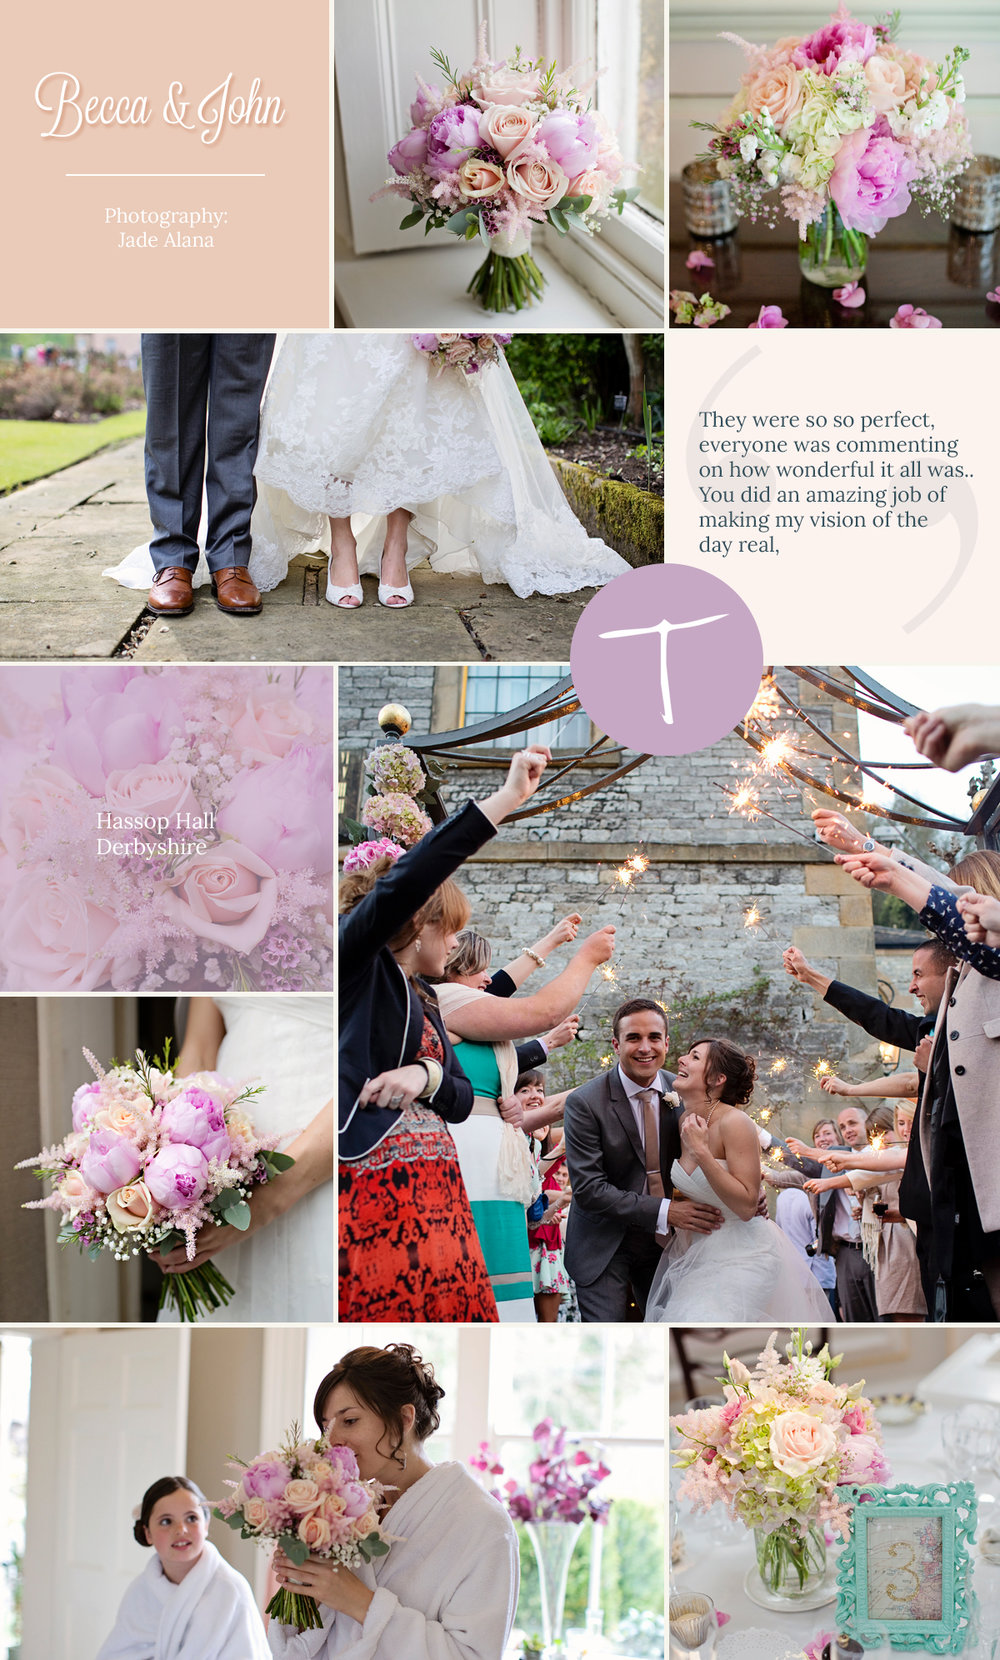 pink floral bouquet and table flowers by Tineke floral design in Derbyshire at Hassop Hall